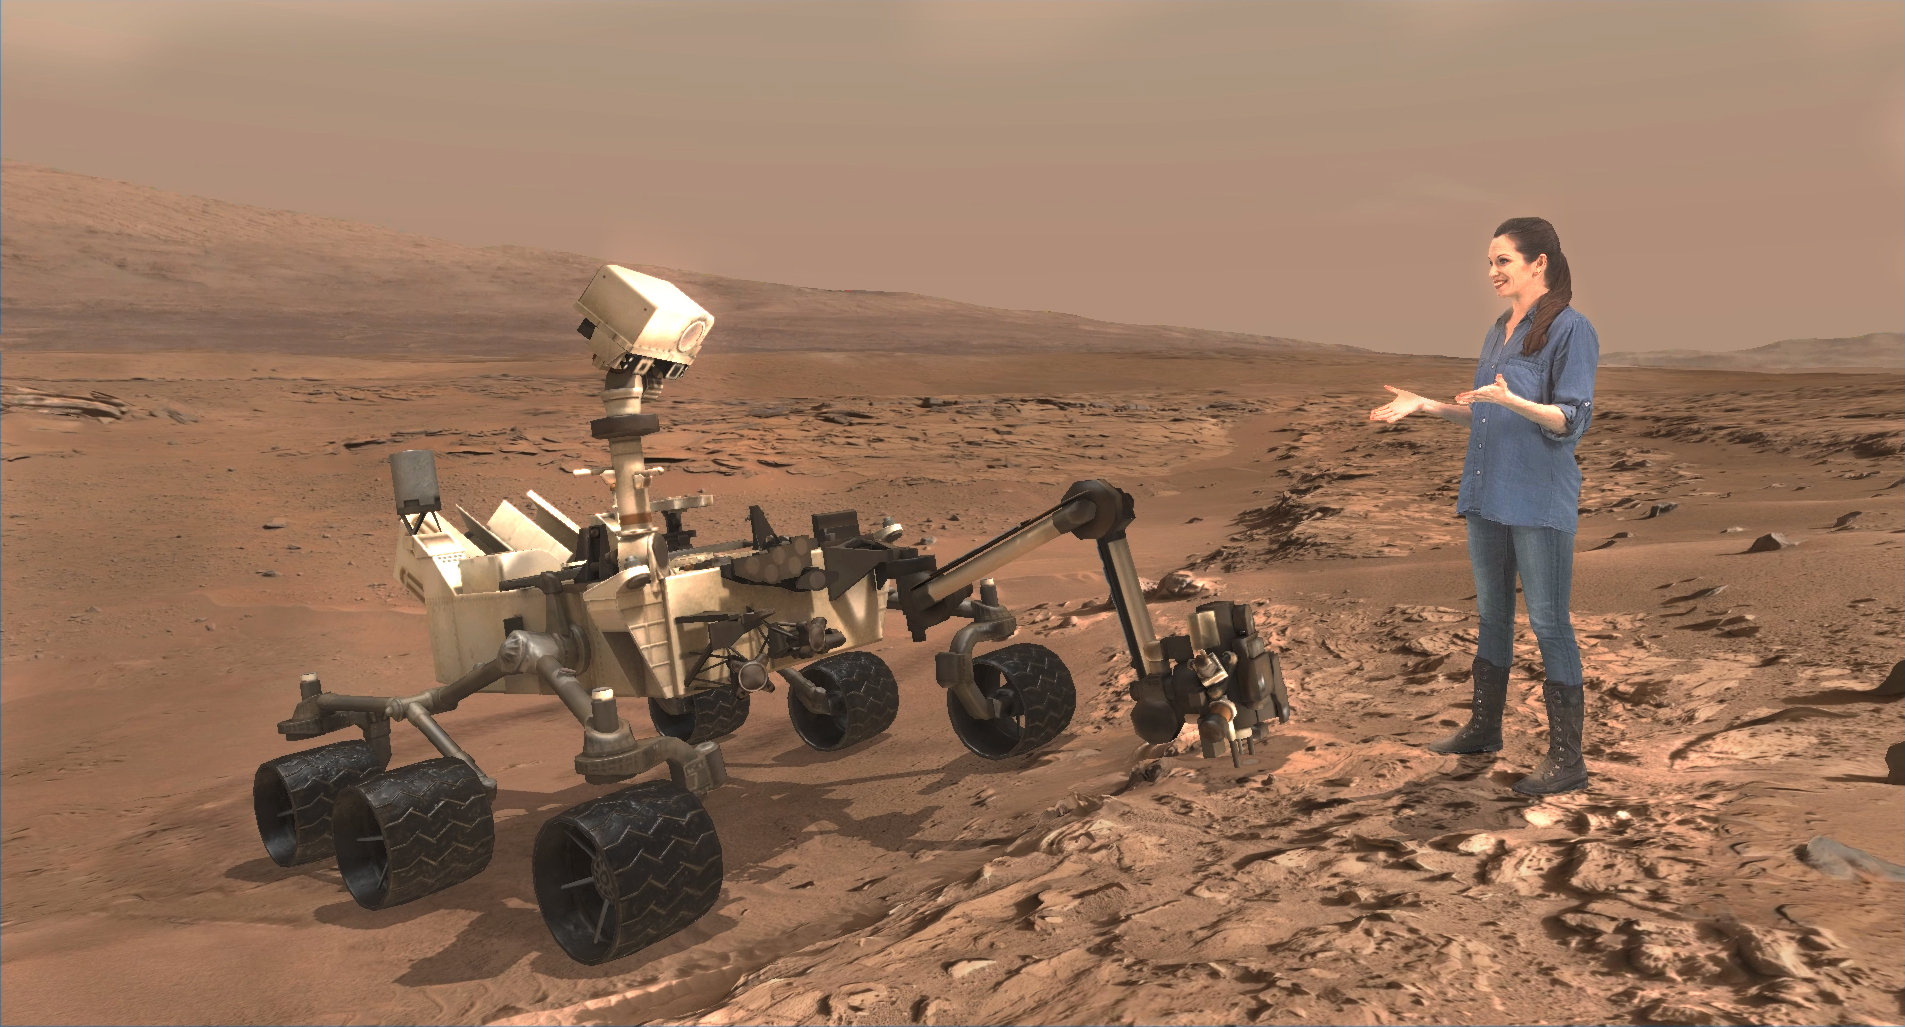 mars rover images - photo #21